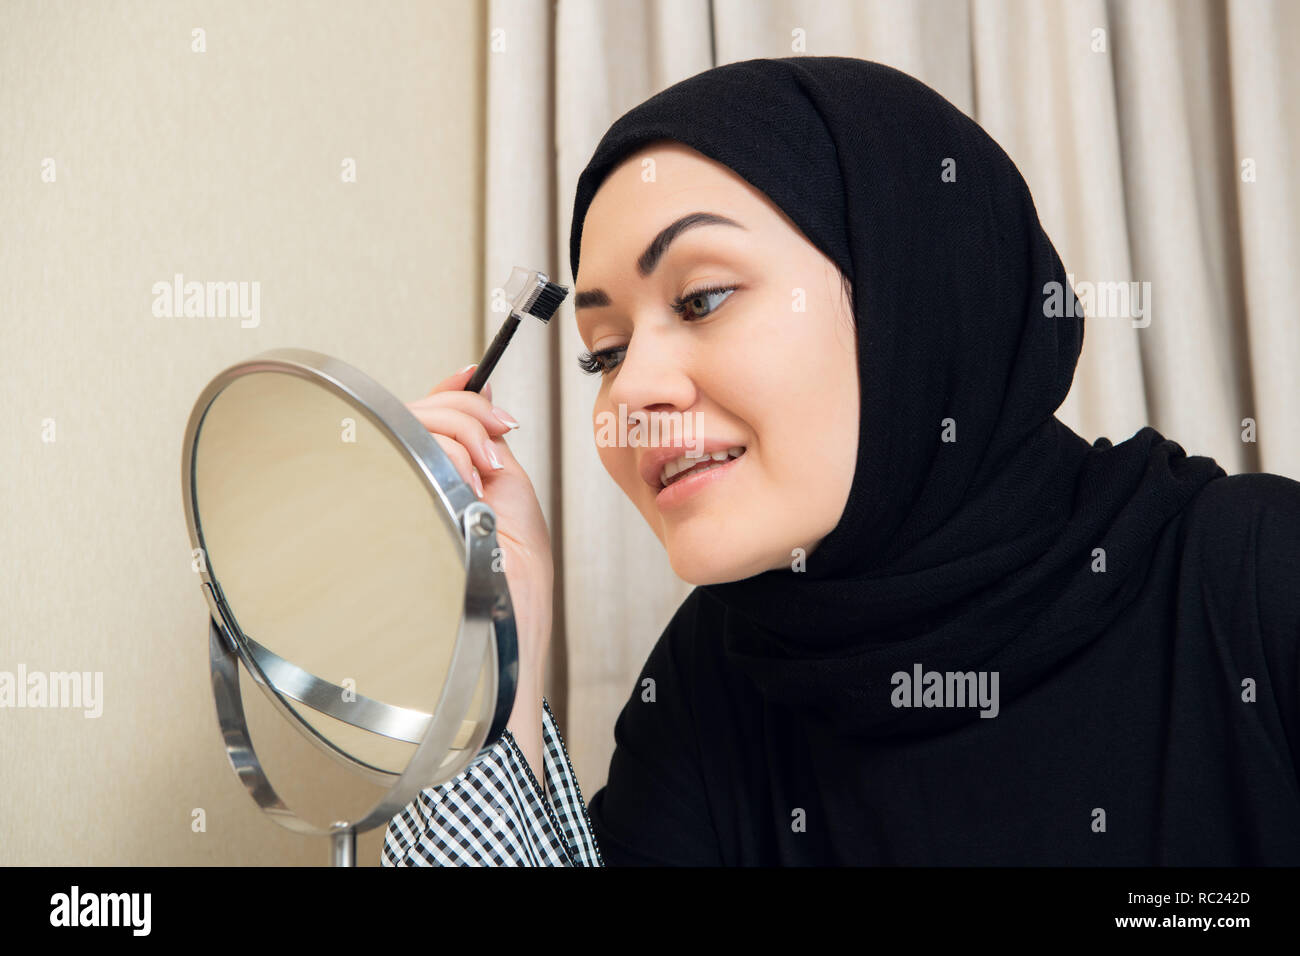 A young muslim woman shaping her eyebrows with a brush - Stock Image